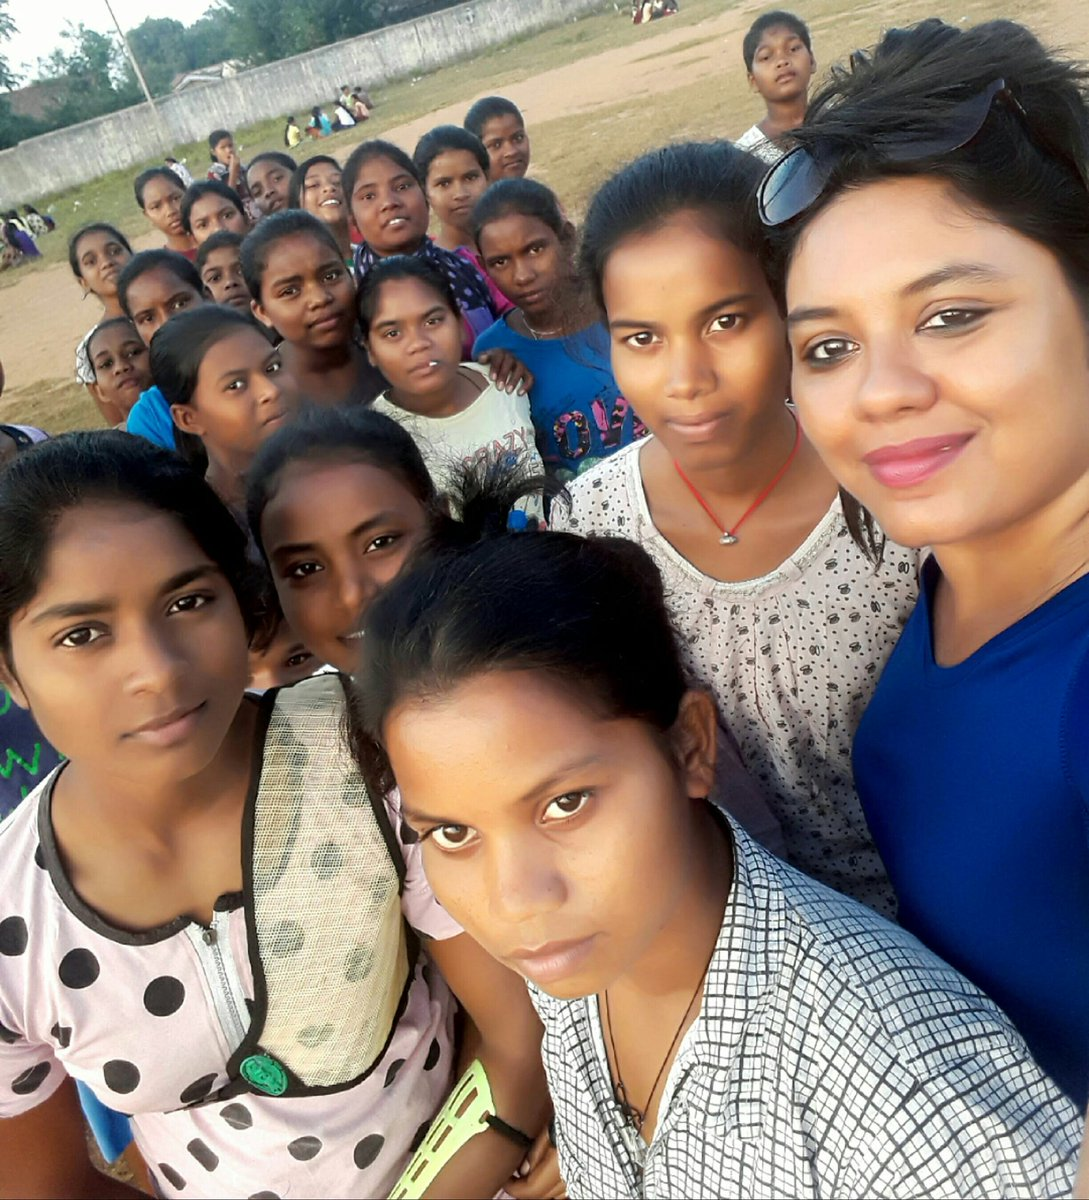 Before #SocialDistancing became the order of the day With students at a #Jharkhand school #girls #women #schoolstudents #education #precovid #girlseducationpic.twitter.com/ImHxrK7sli